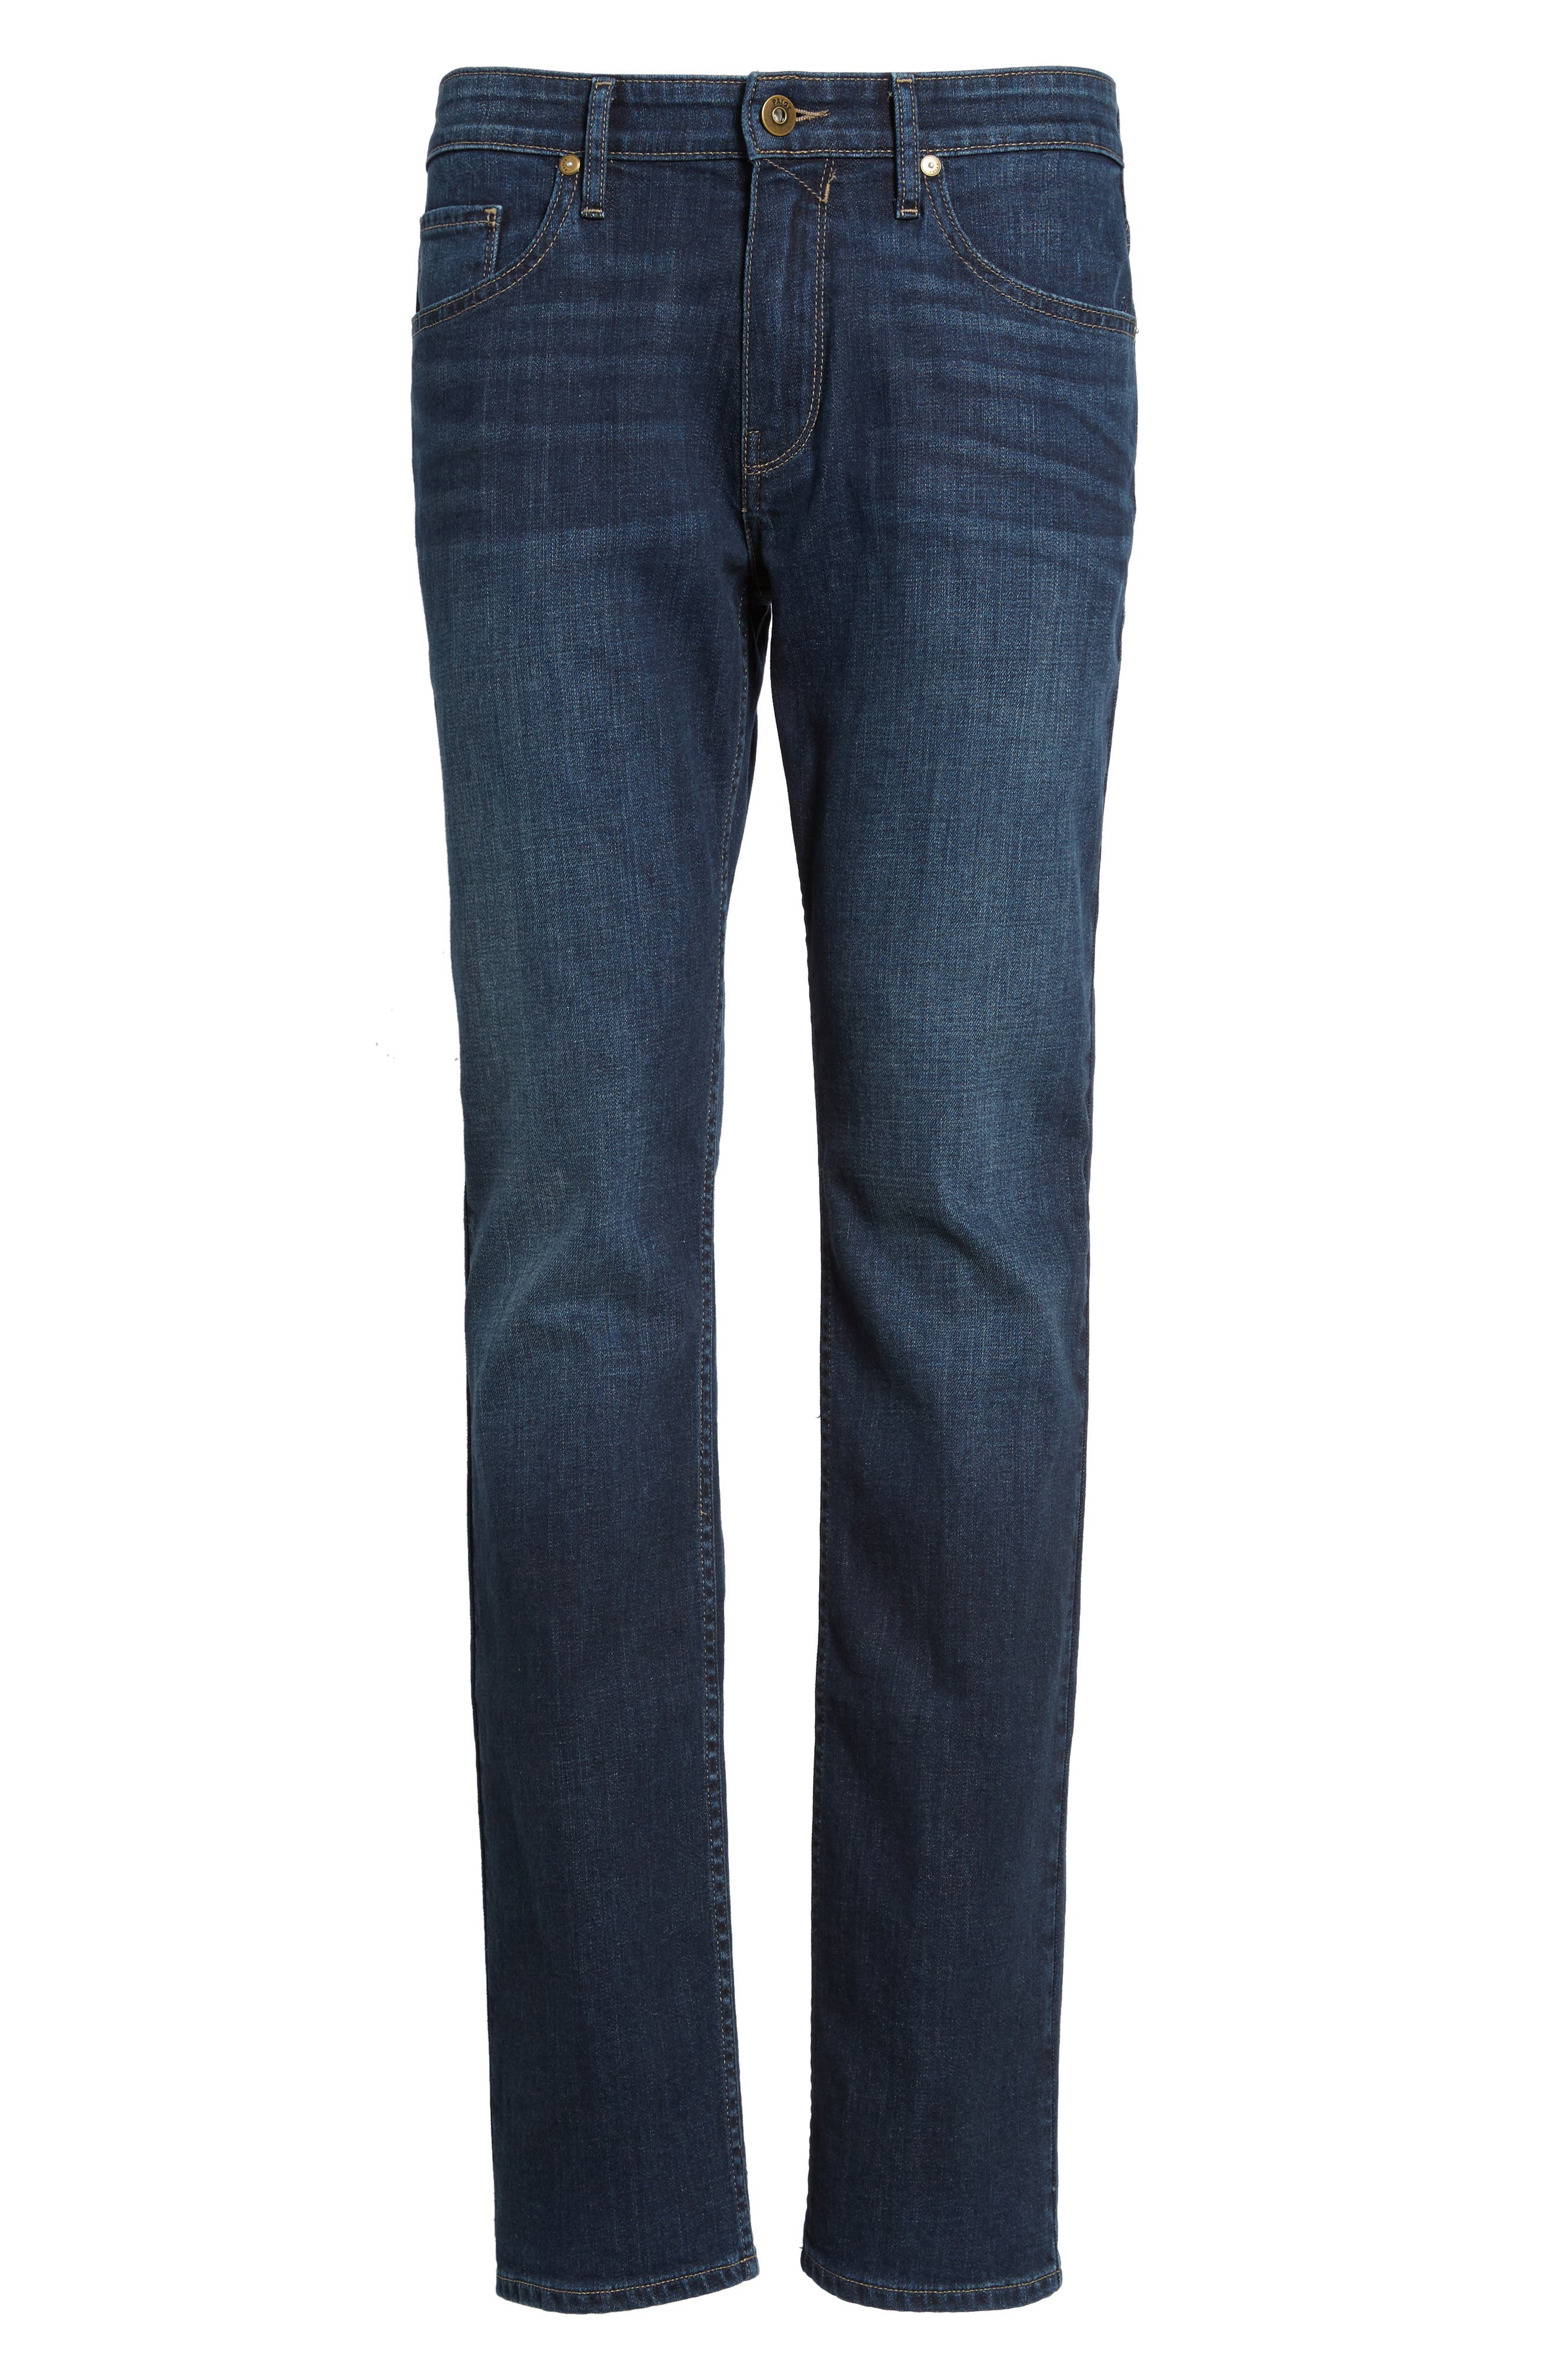 Federal Slim Straight Leg Jeans,                             Alternate thumbnail 6, color,                             Arnold